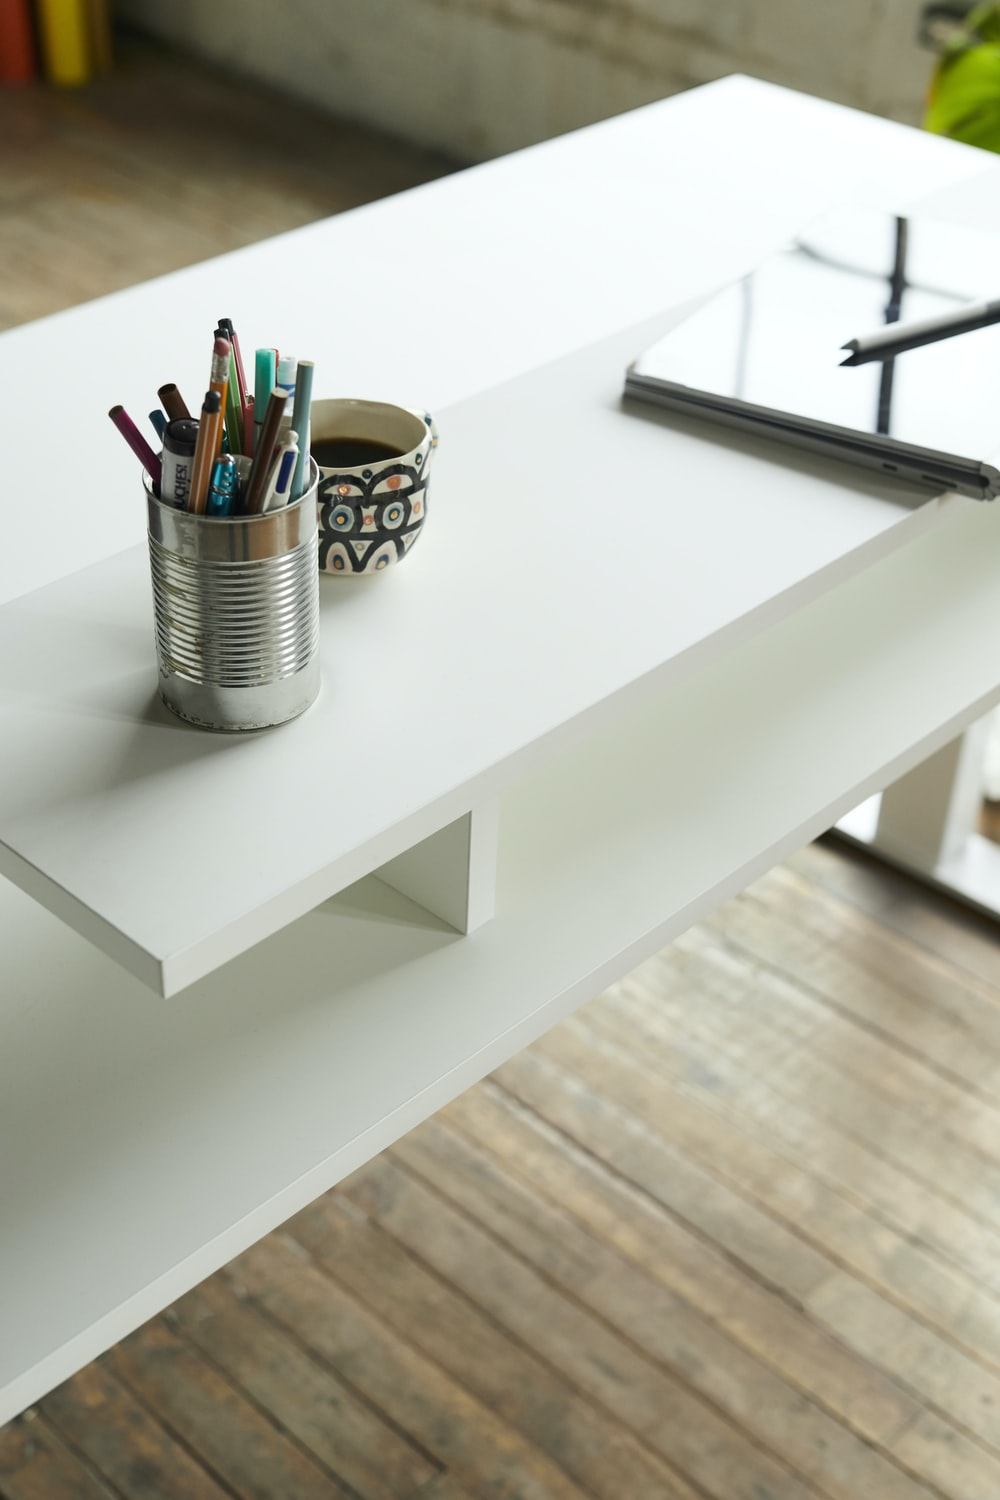 pencils in white steel cup on white wooden table